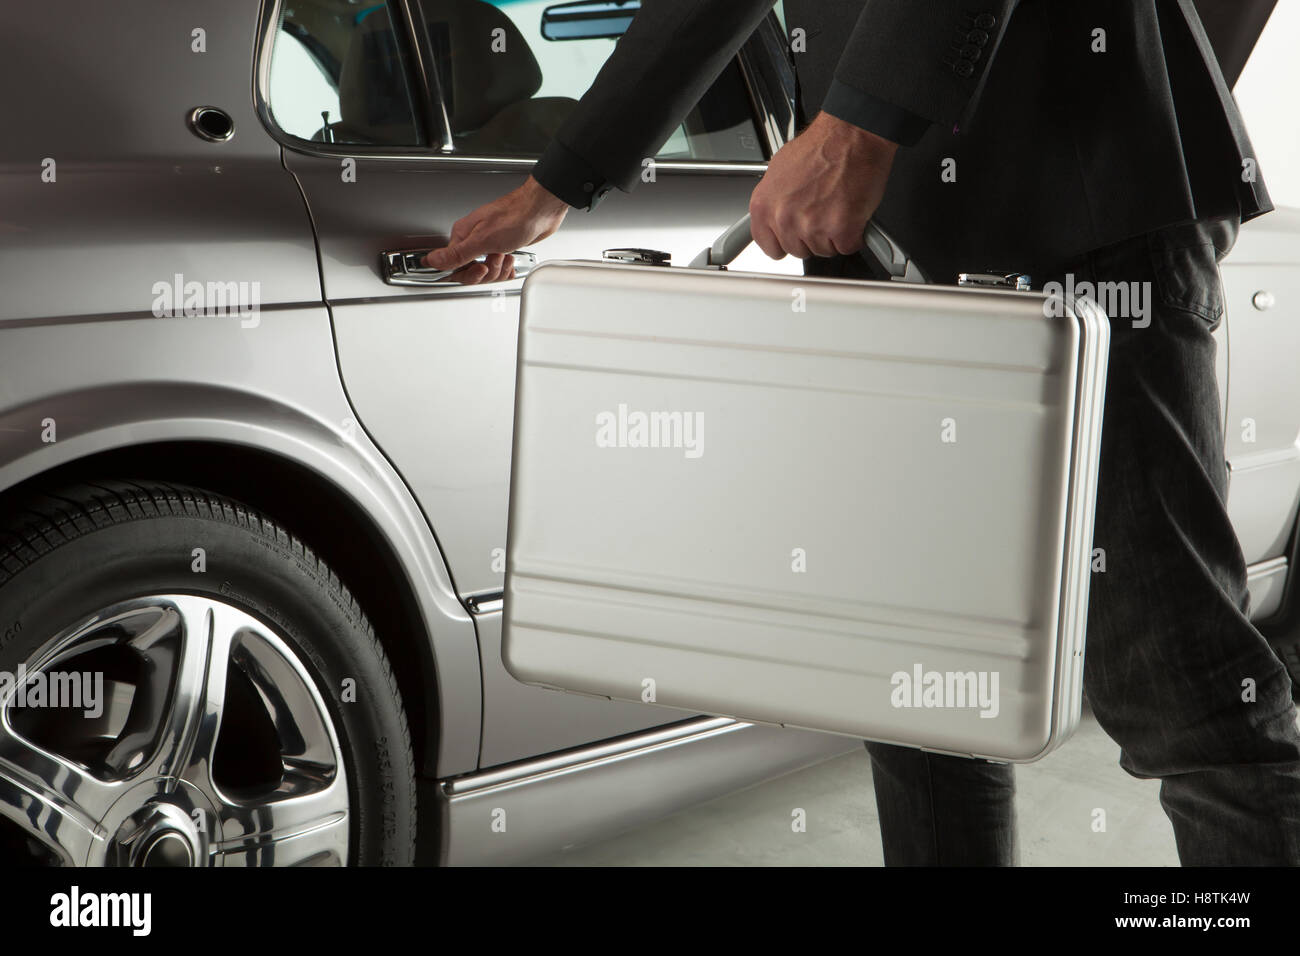 Hand on handle. Close-up of man in formalwear opening a car door with a briefcase - Stock Image